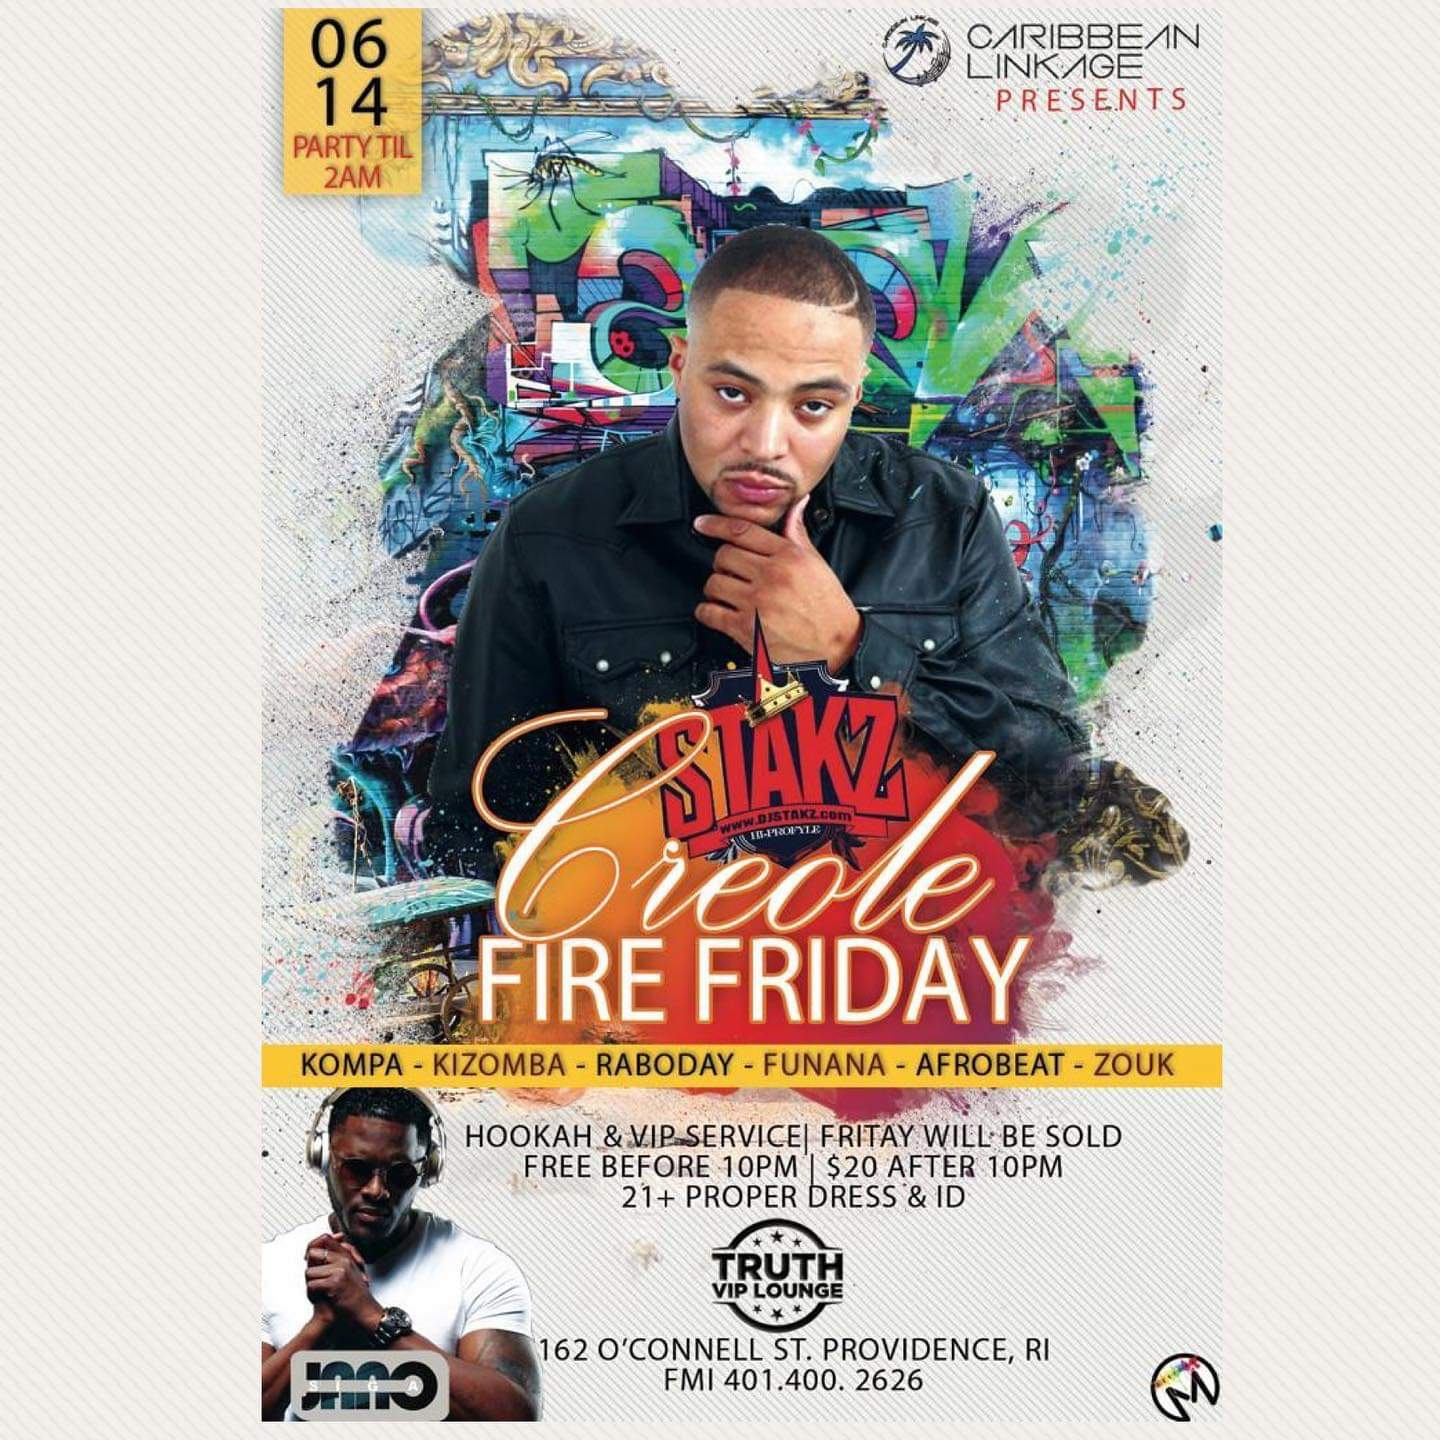 Creole Fire Fridays - DJ Stakz - June 14.jpg